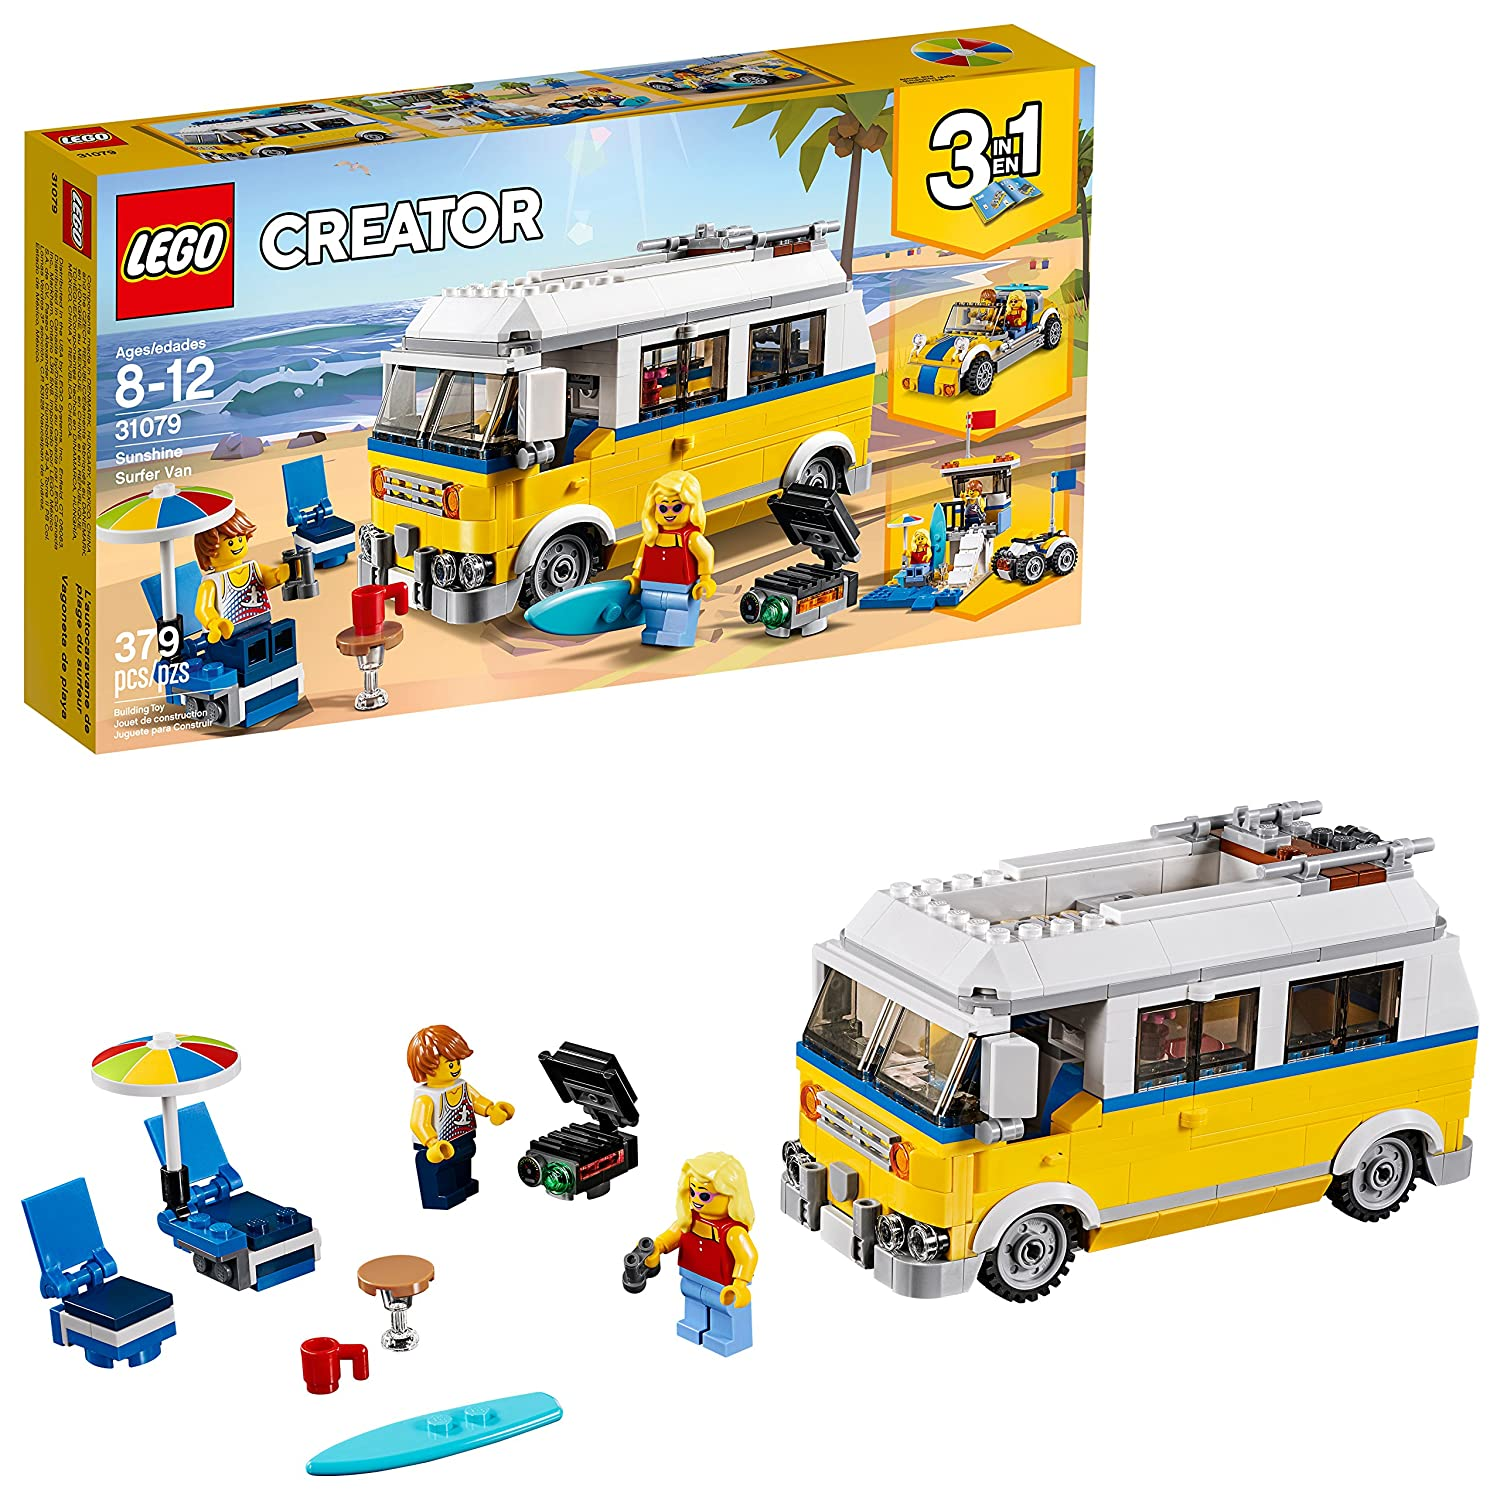 LEGO Creator 3in1 Sunshine Surfer Van 31079 Building Kit (379 Piece)